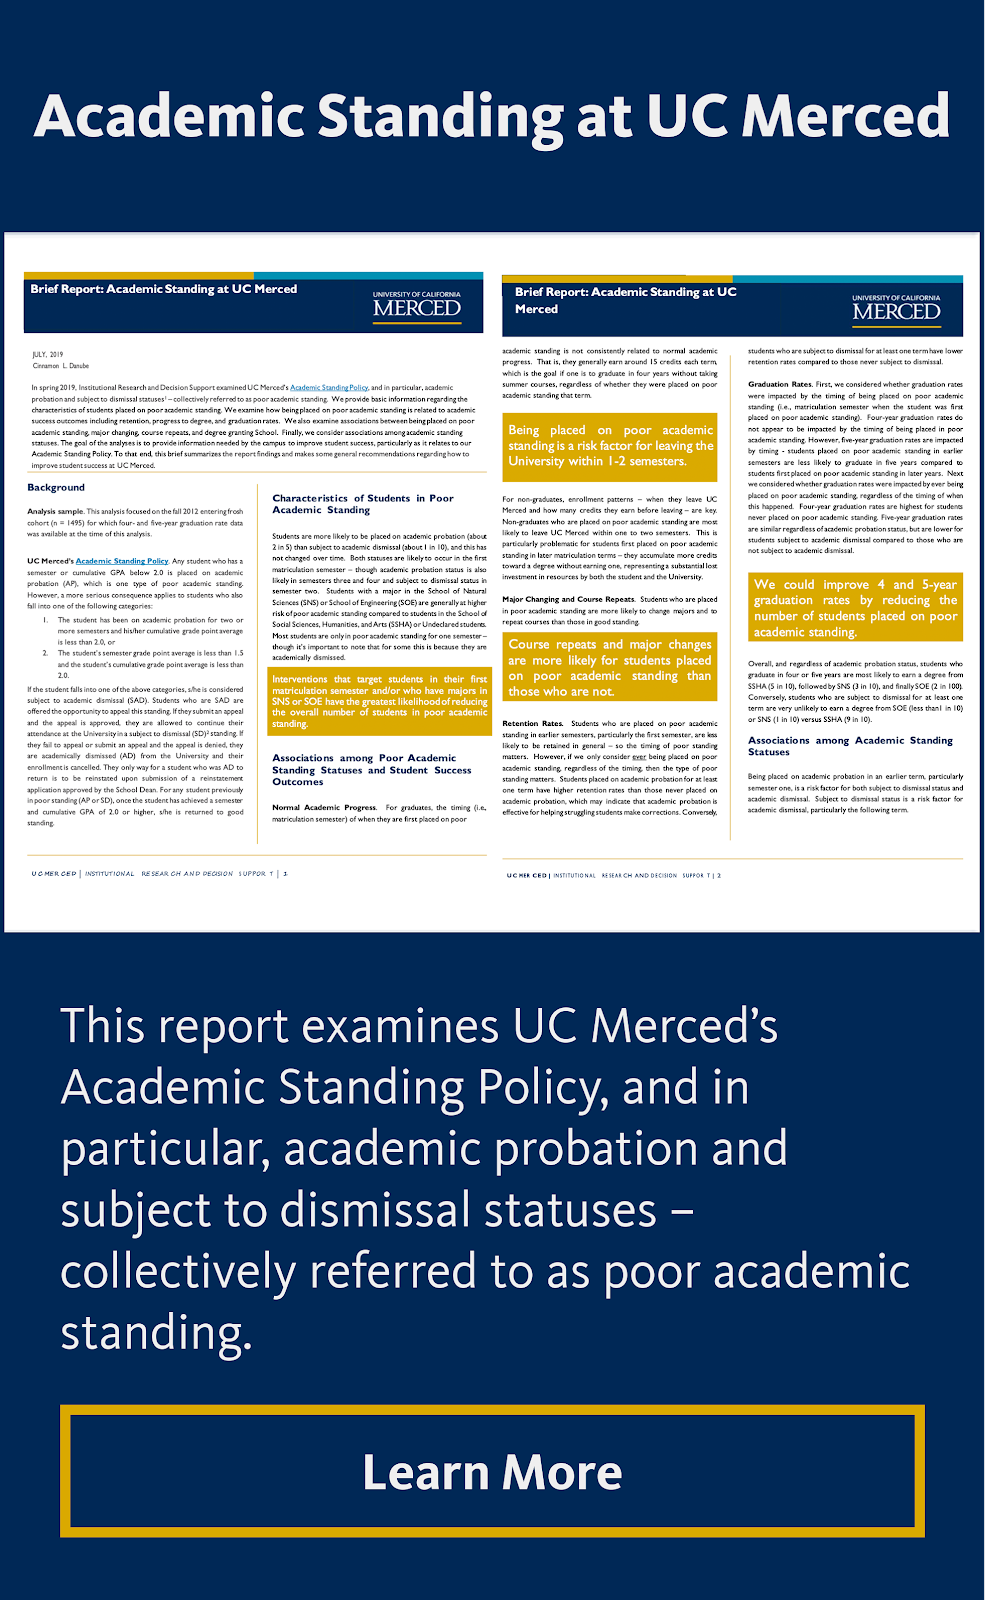 Academic Standing at UC Merced